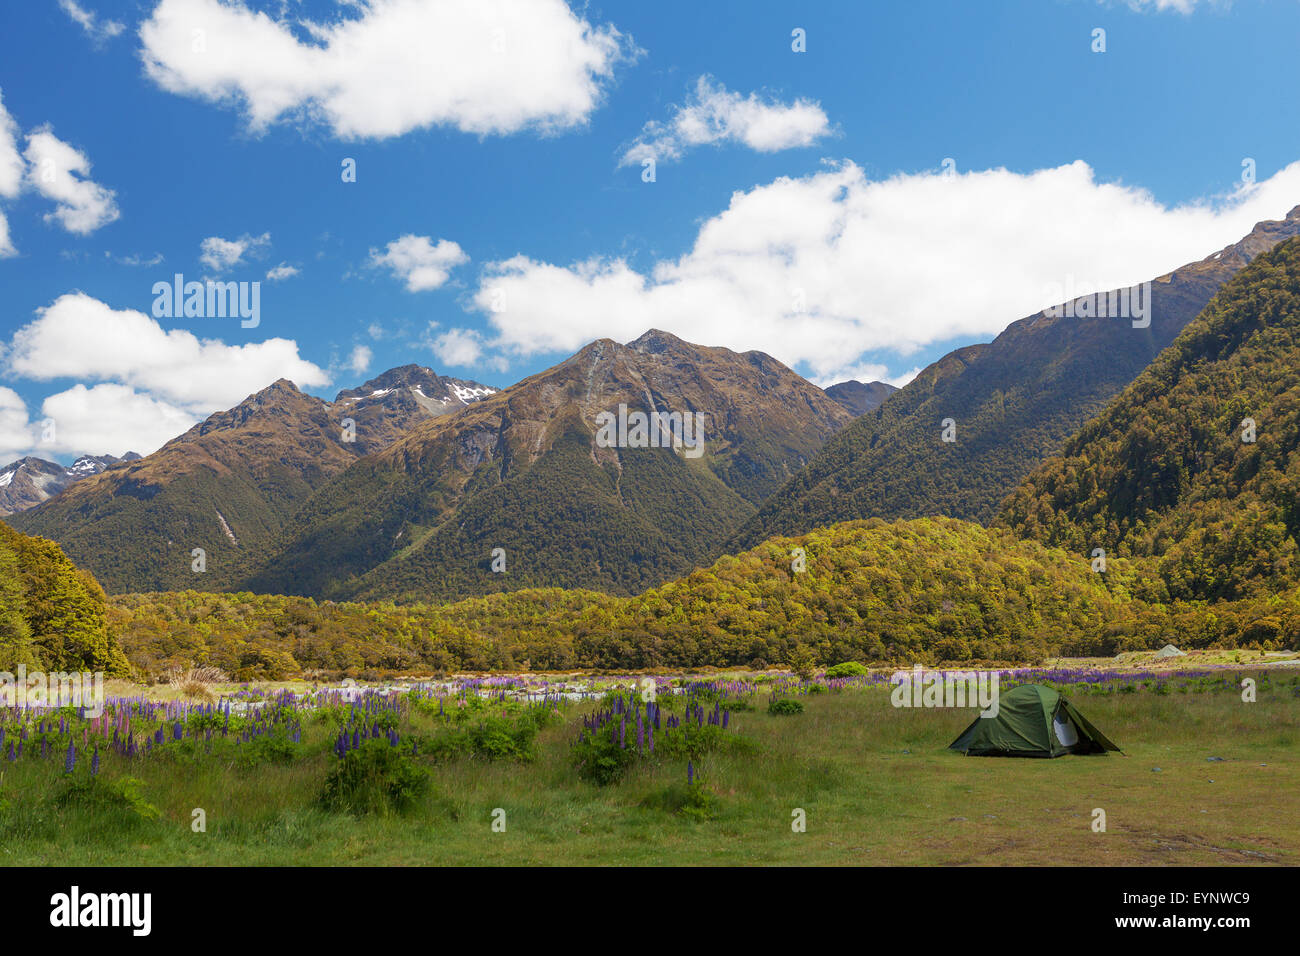 Beautiful Mountains and tramper's tent in Fiordland National Park, South Island, New Zealand - Stock Image